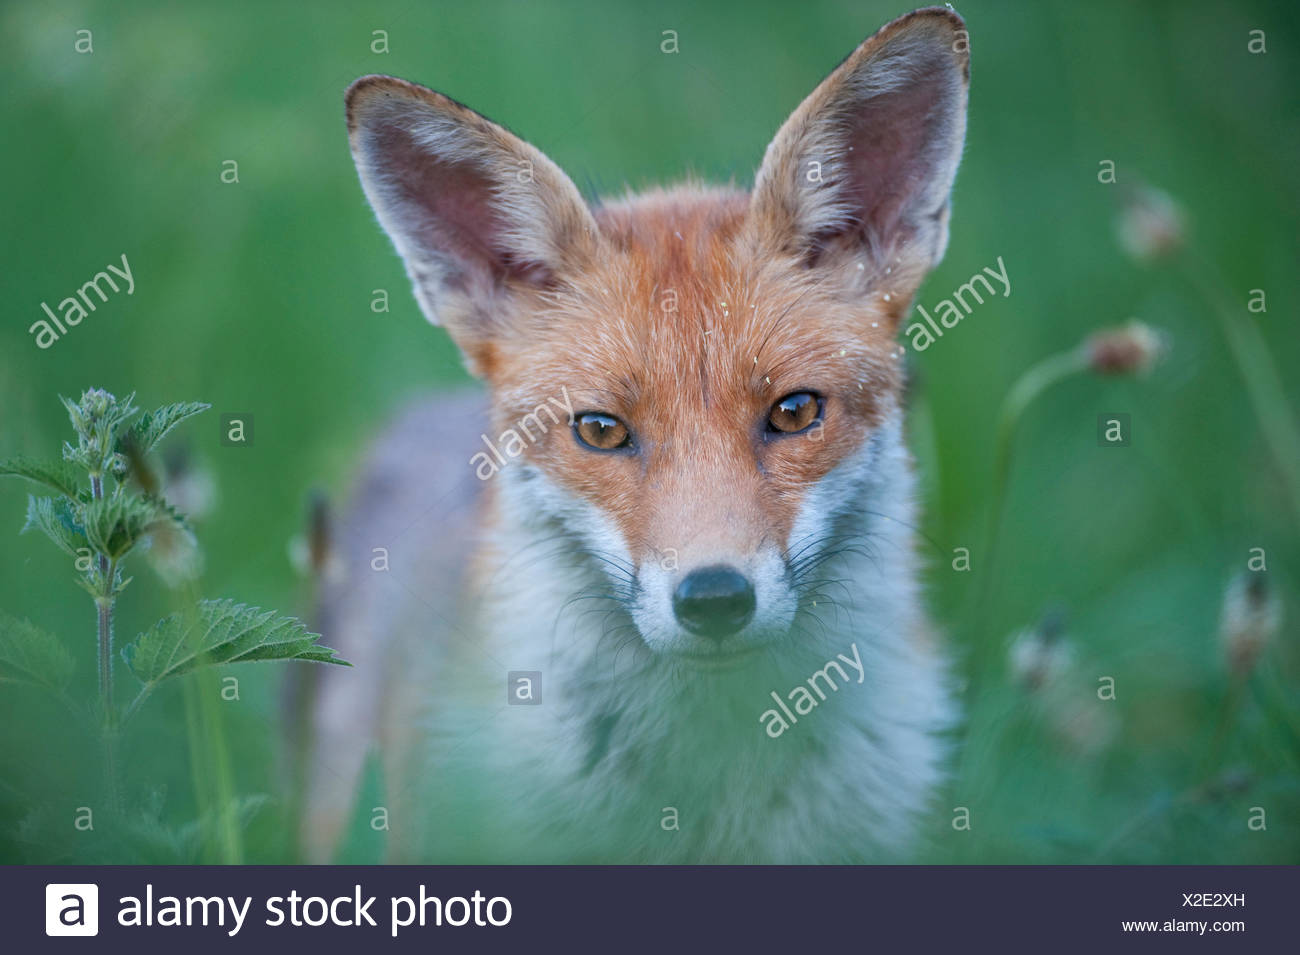 Red fox (Vulpes vulpes) with grass seed on face, England - Stock Image